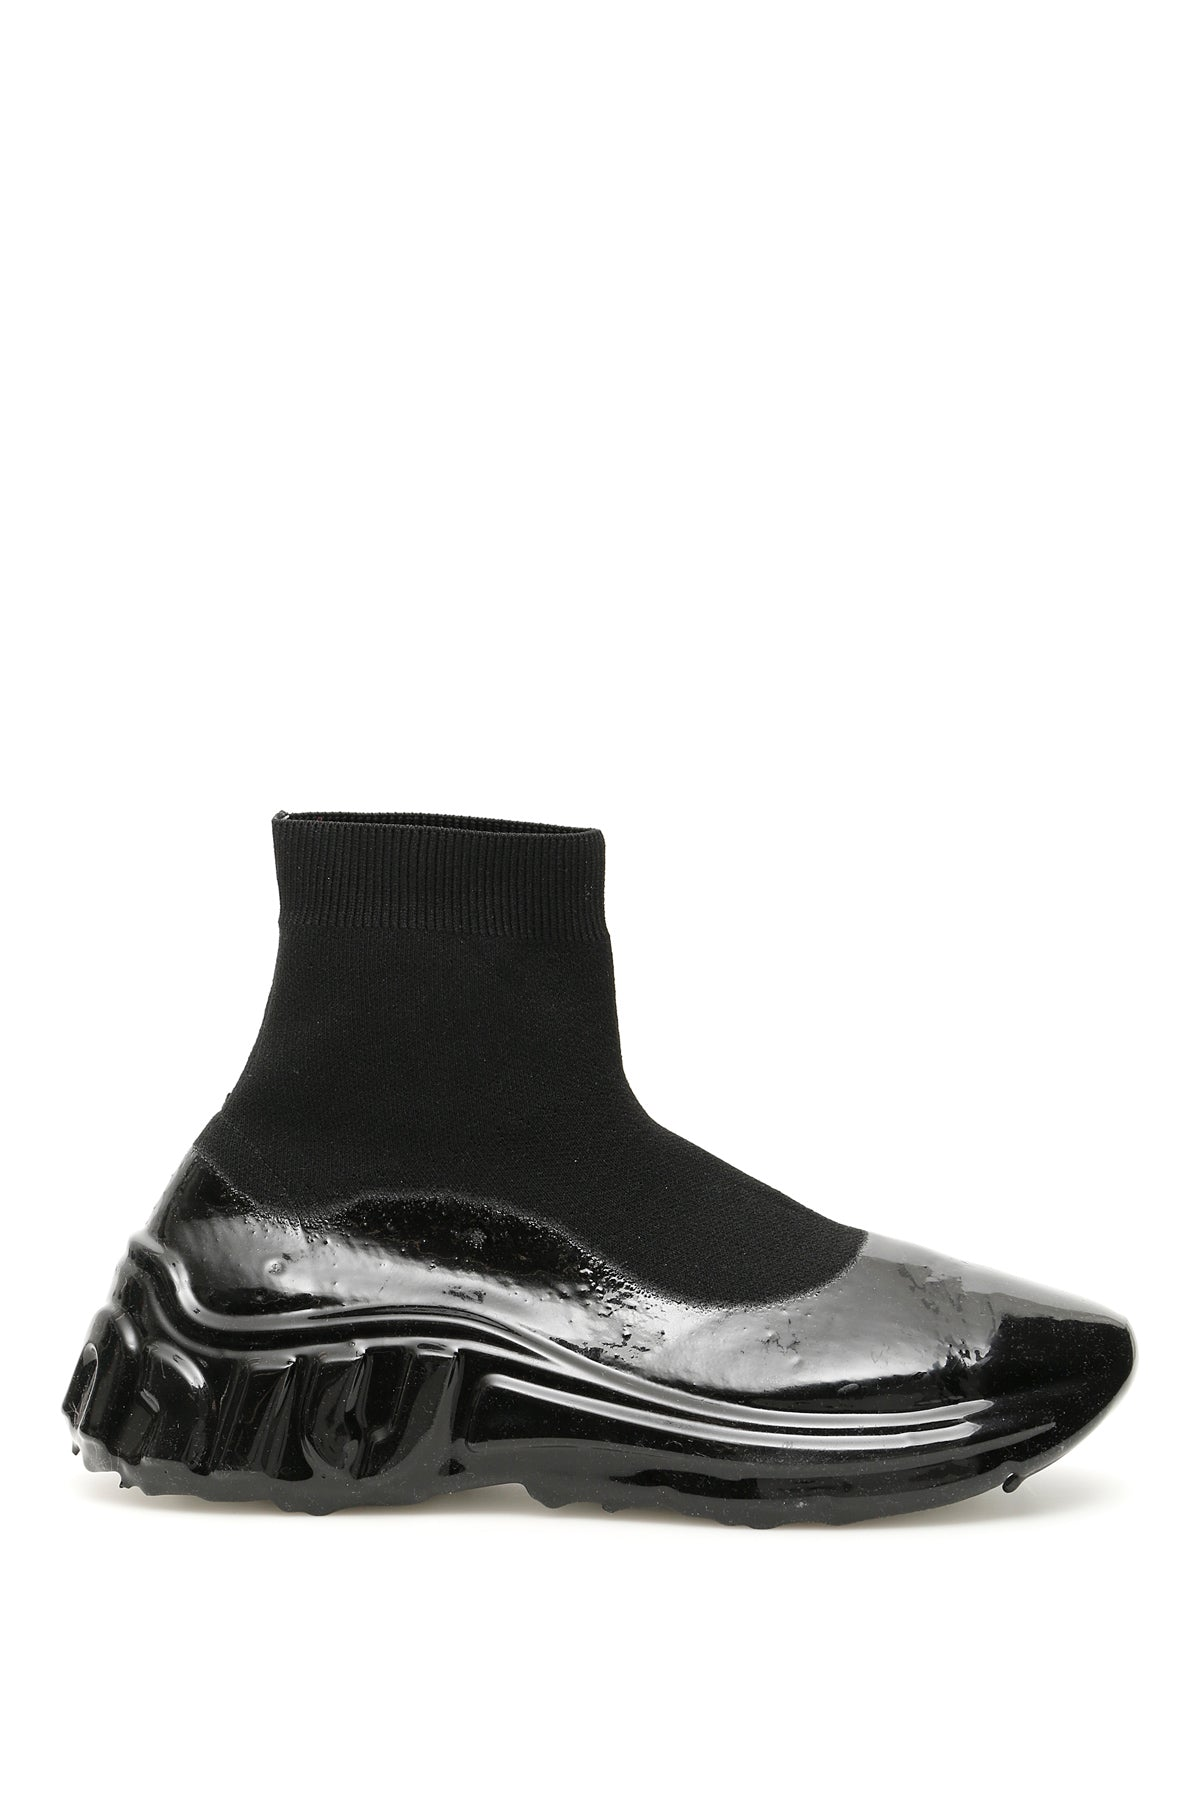 Miu Miu Hosiery MIU MIU RUN SOCK SNEAKERS